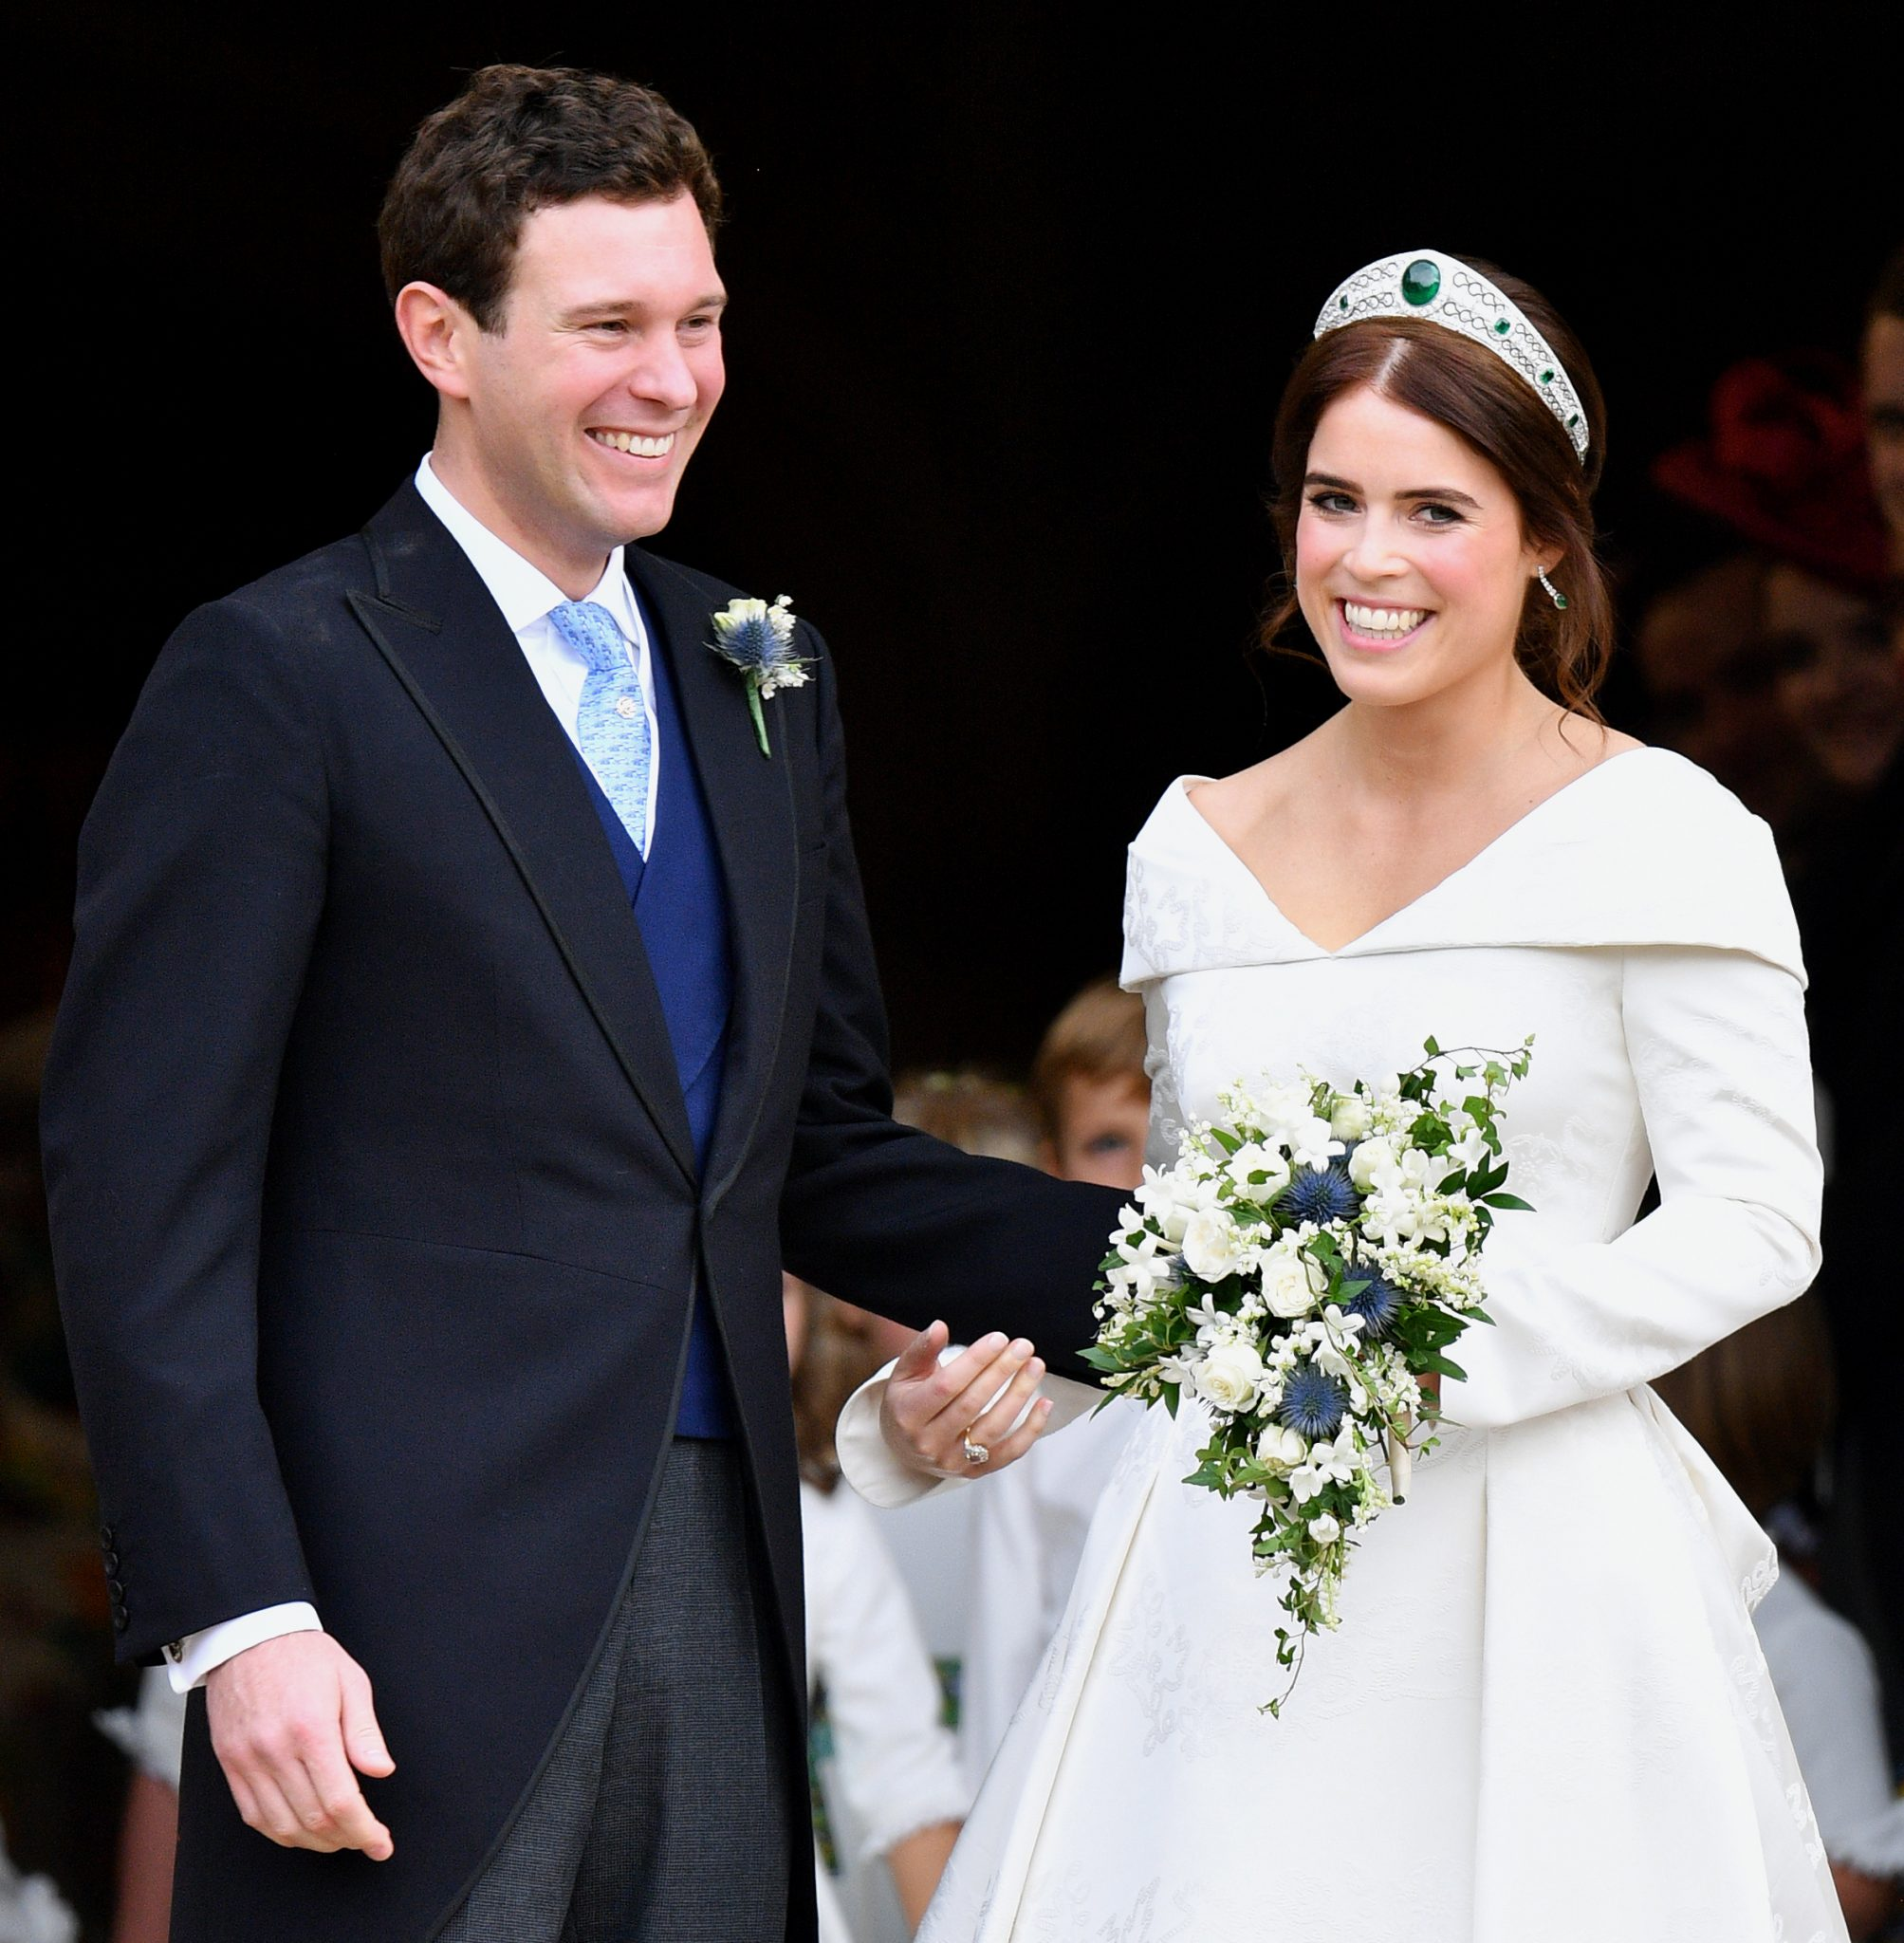 Britain's Princess Eugenie is expecting her first child